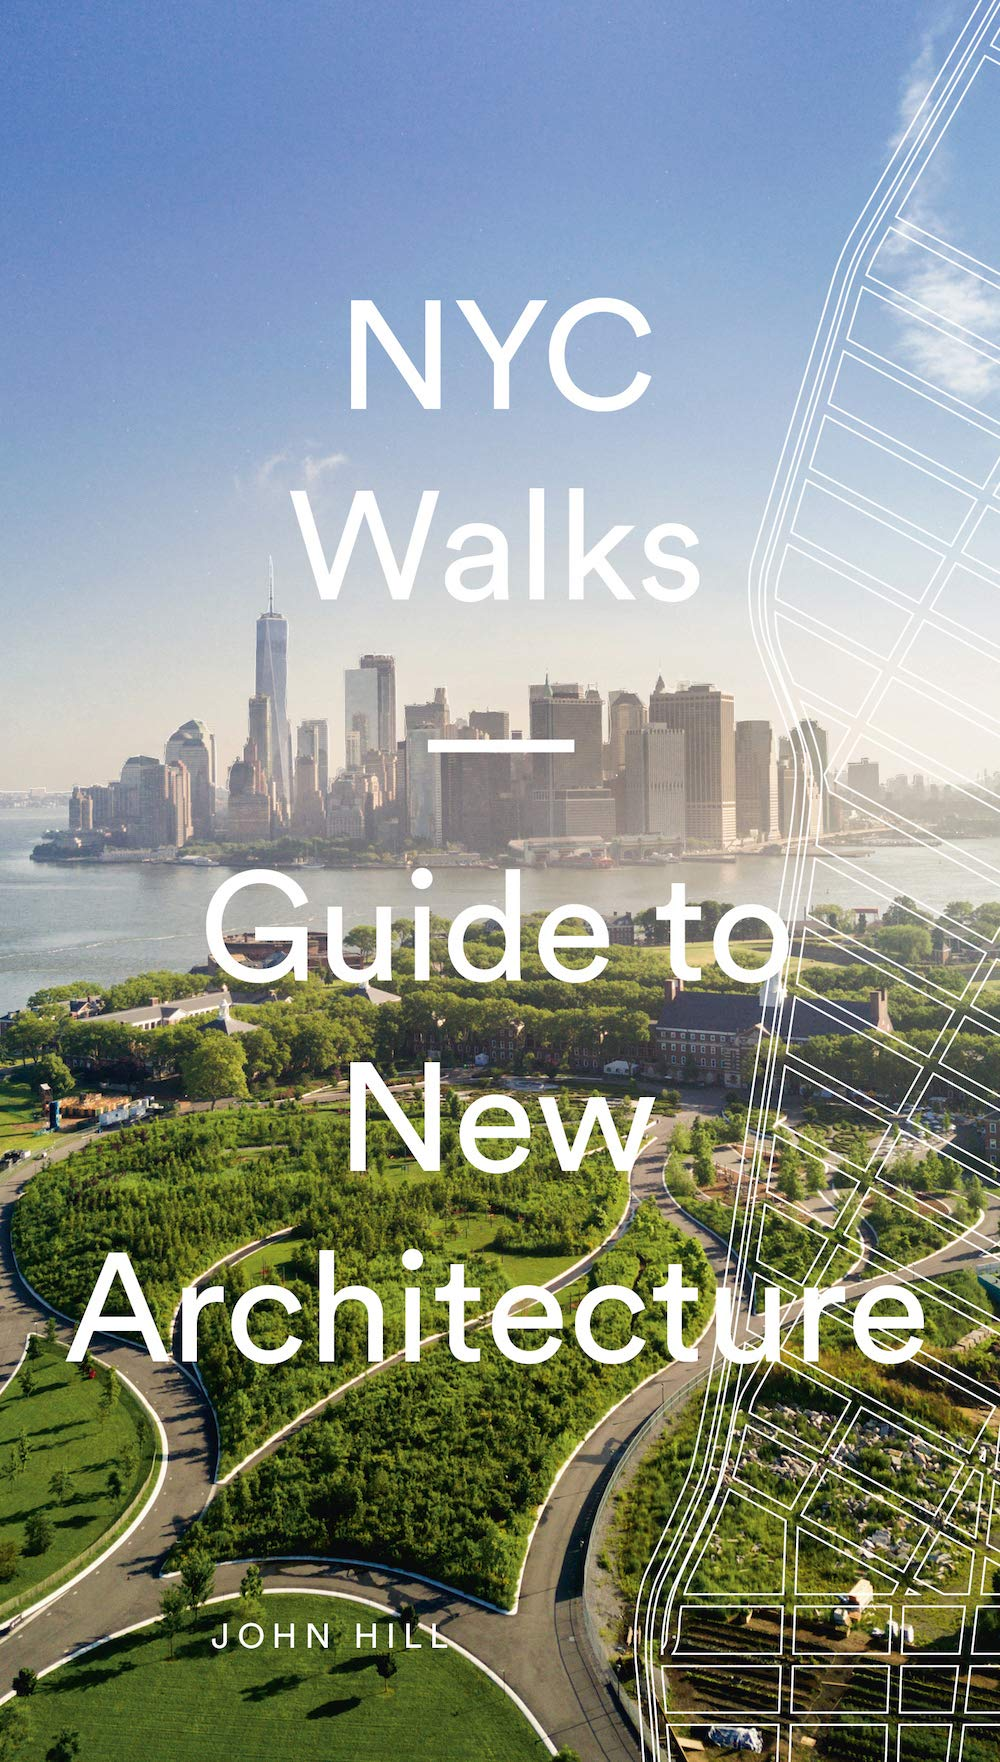 NYC Walks: Guide to New Architectur - Autor:John Hill is editor-in-chief of international e-magazine World-Architects.com and founder of the blog A Daily Dose of Architecture. He is the author of 100 Years, 100 Buildings and 100 Years, 100 Landscape Designs (both by Prestel). He lives in New York City.Photographer:PAVEL BENDOV is a New York and Los Angeles-based architectural photographer and the author of New Architecture New York (Prestel).